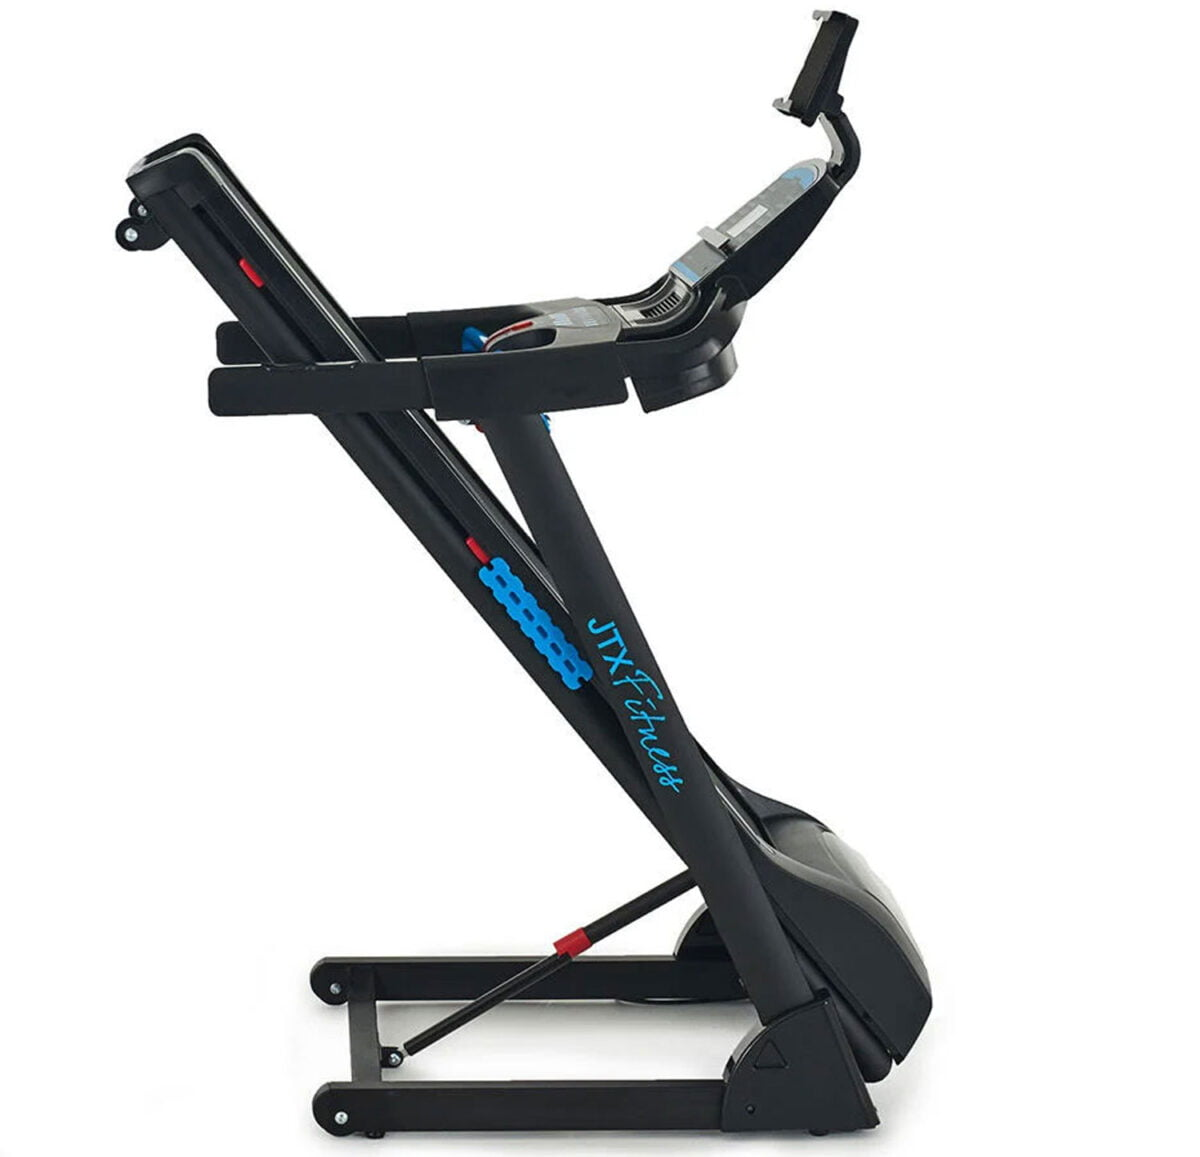 JTX Sprint 3 folded away for storage blue and black